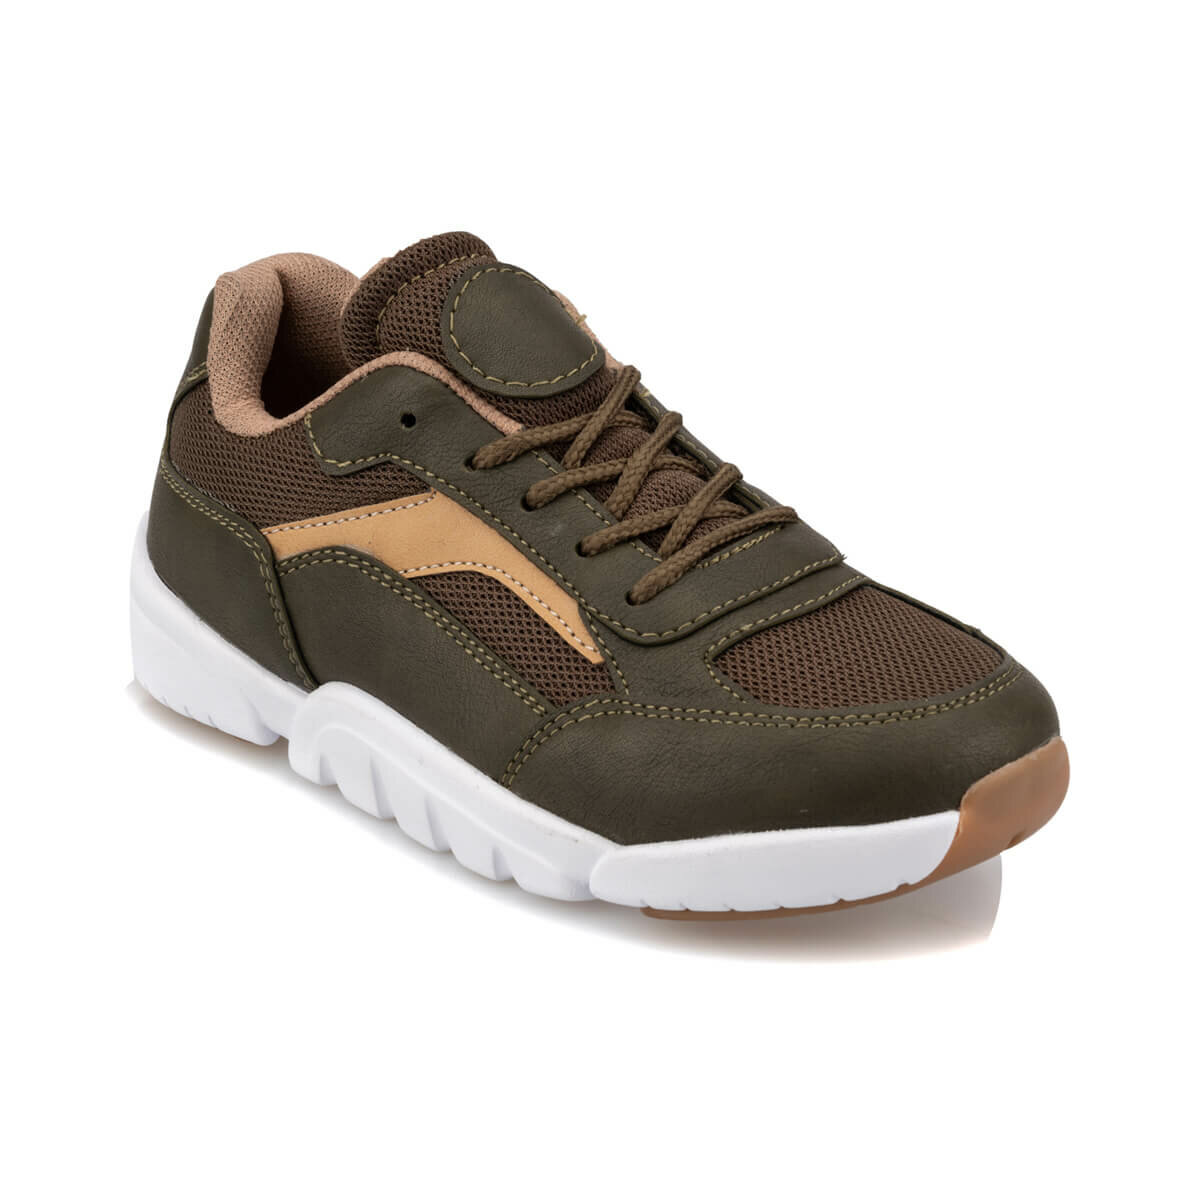 FLO 92.511869.F Khaki Male Child Shoes Polaris